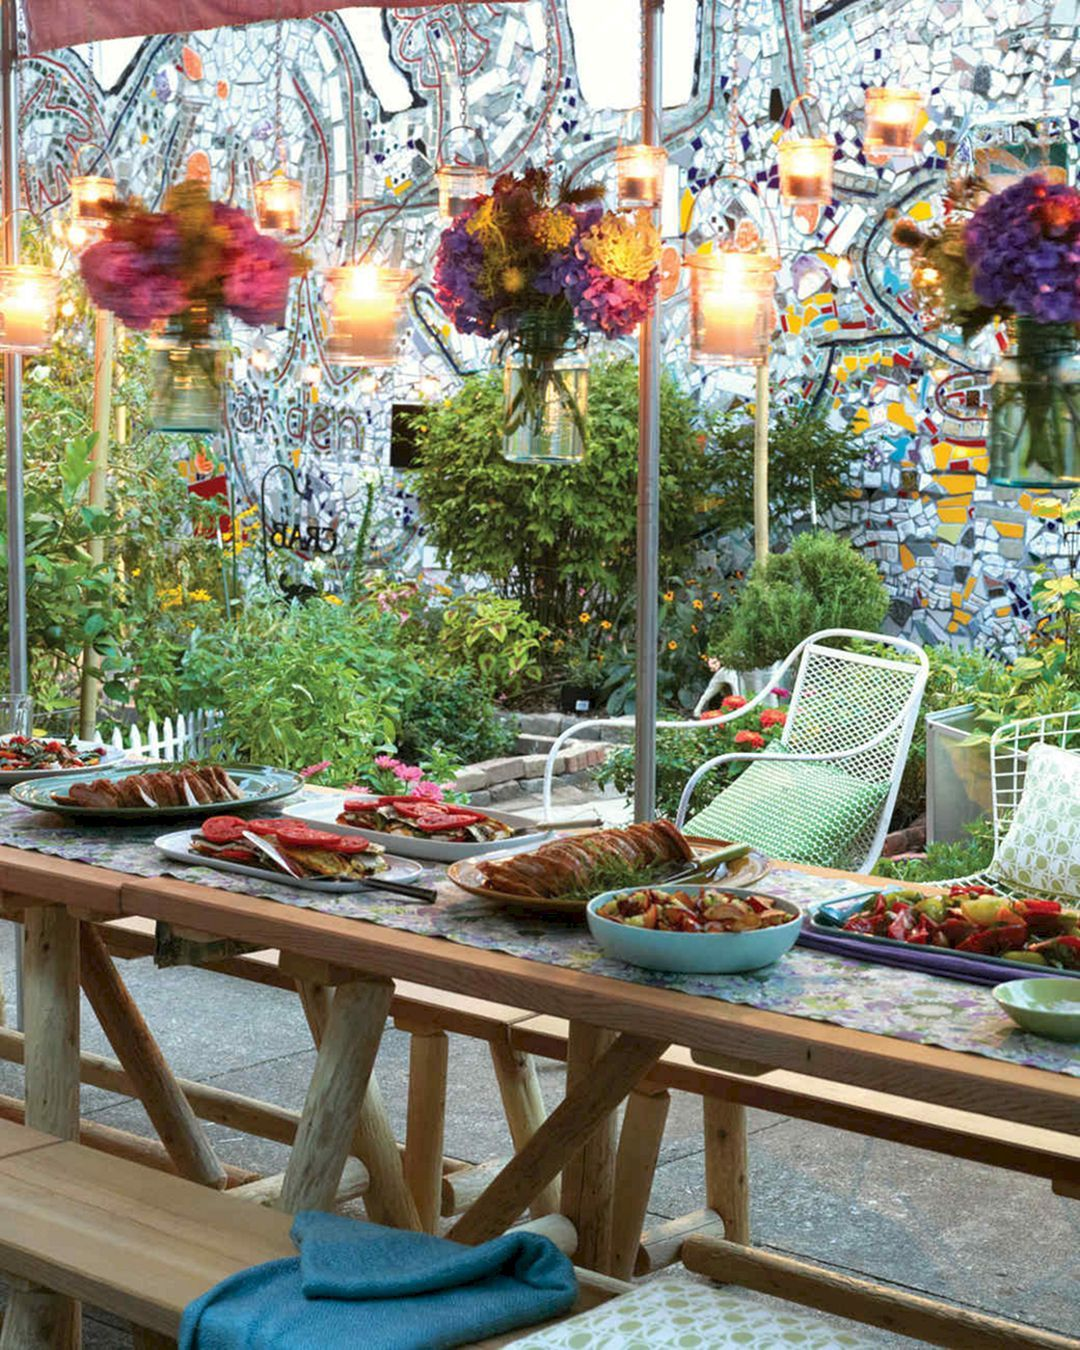 20+ Awesome Garden Party Decorations Ideas For Your Special ...